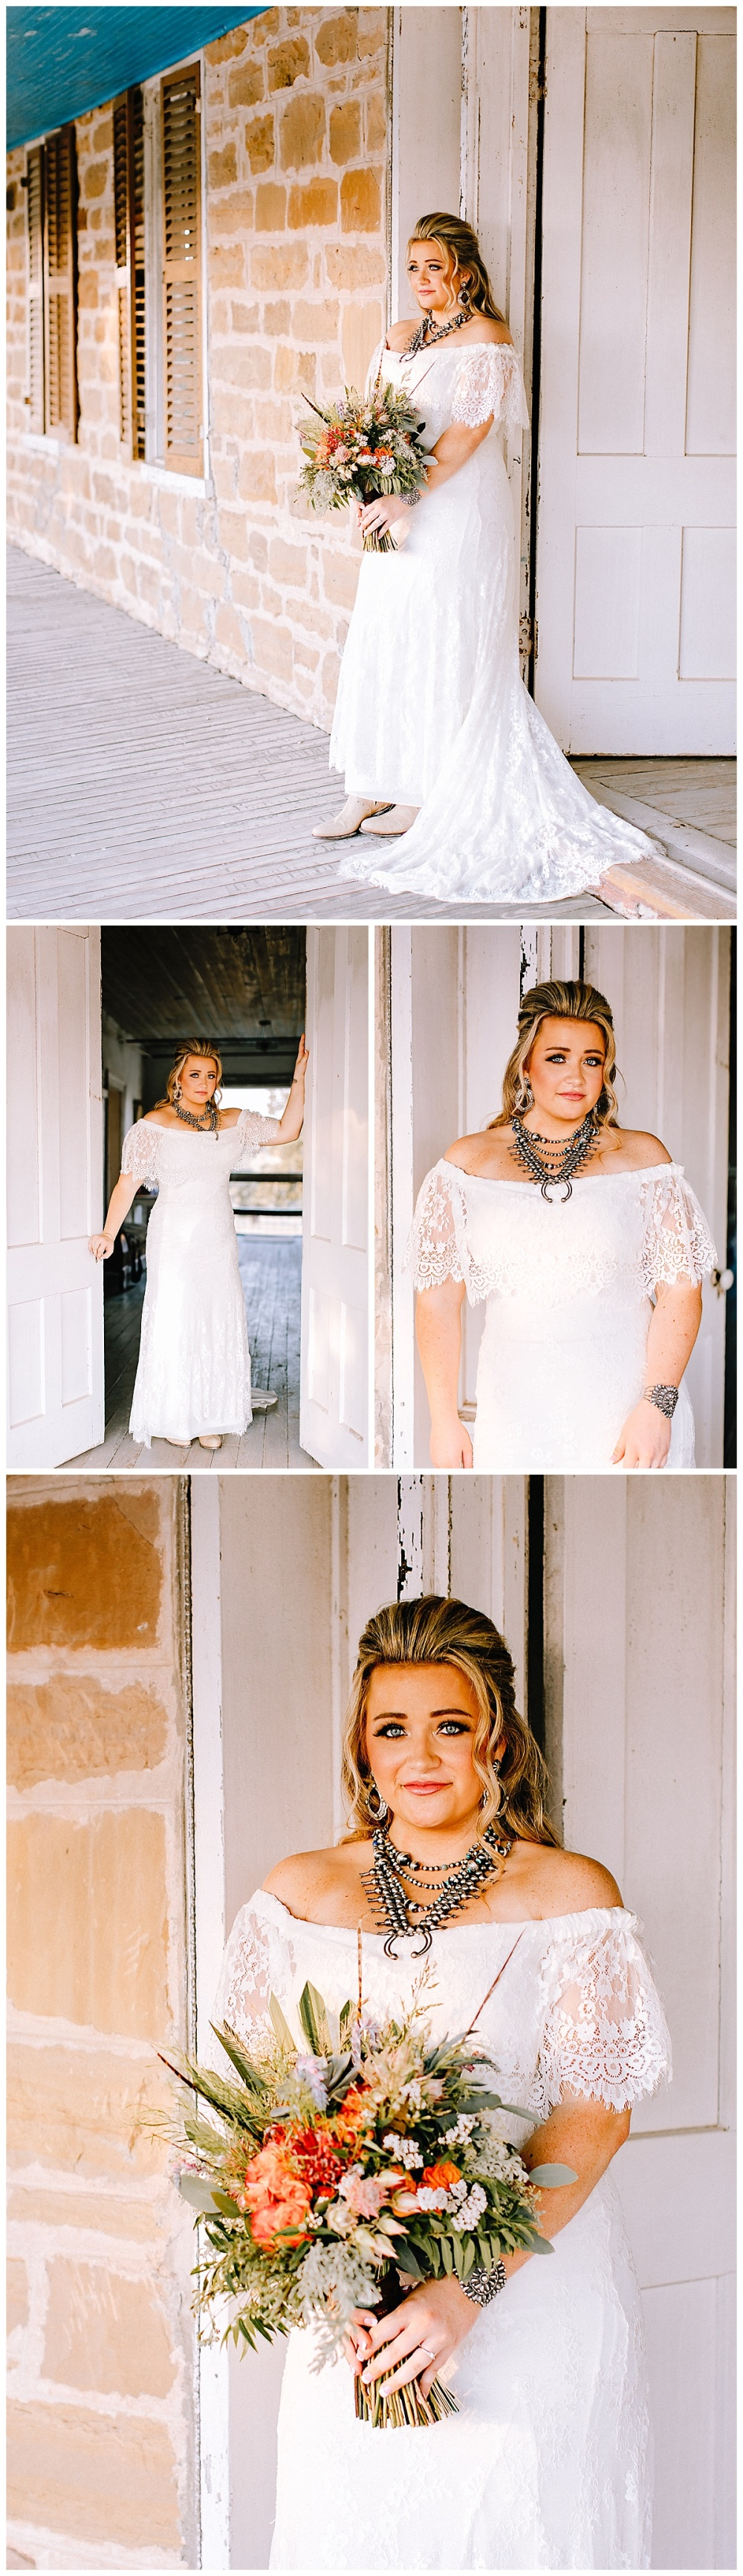 Carly-Barton-Photography-Whitehall-Polley-Mansion-Sutherland-Springs-Texas-Wedding-Bridals-Caitlin_0008.jpg